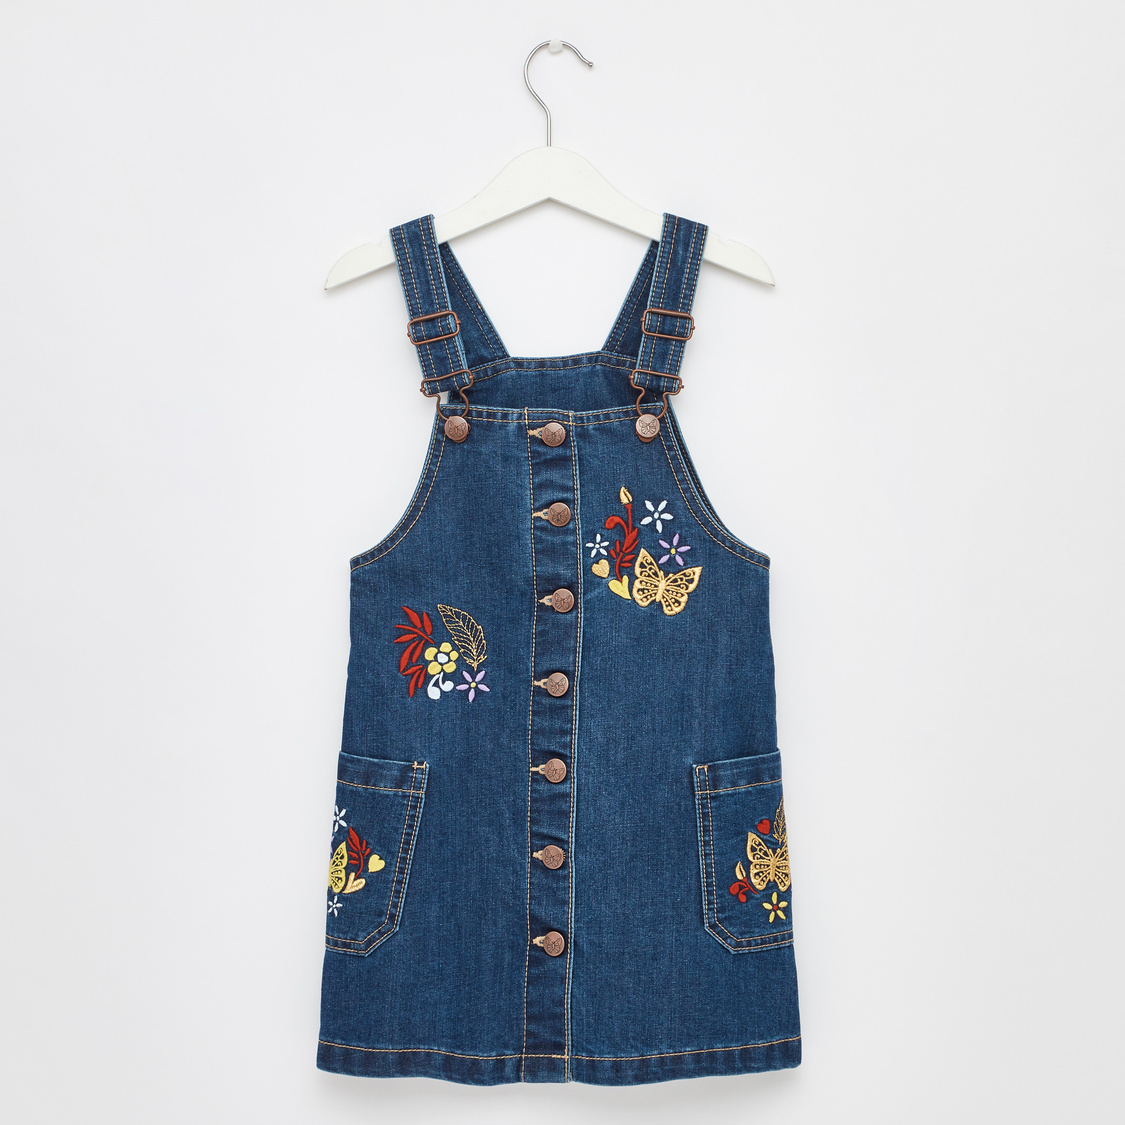 Embroidered Pinafore Dress with Pockets